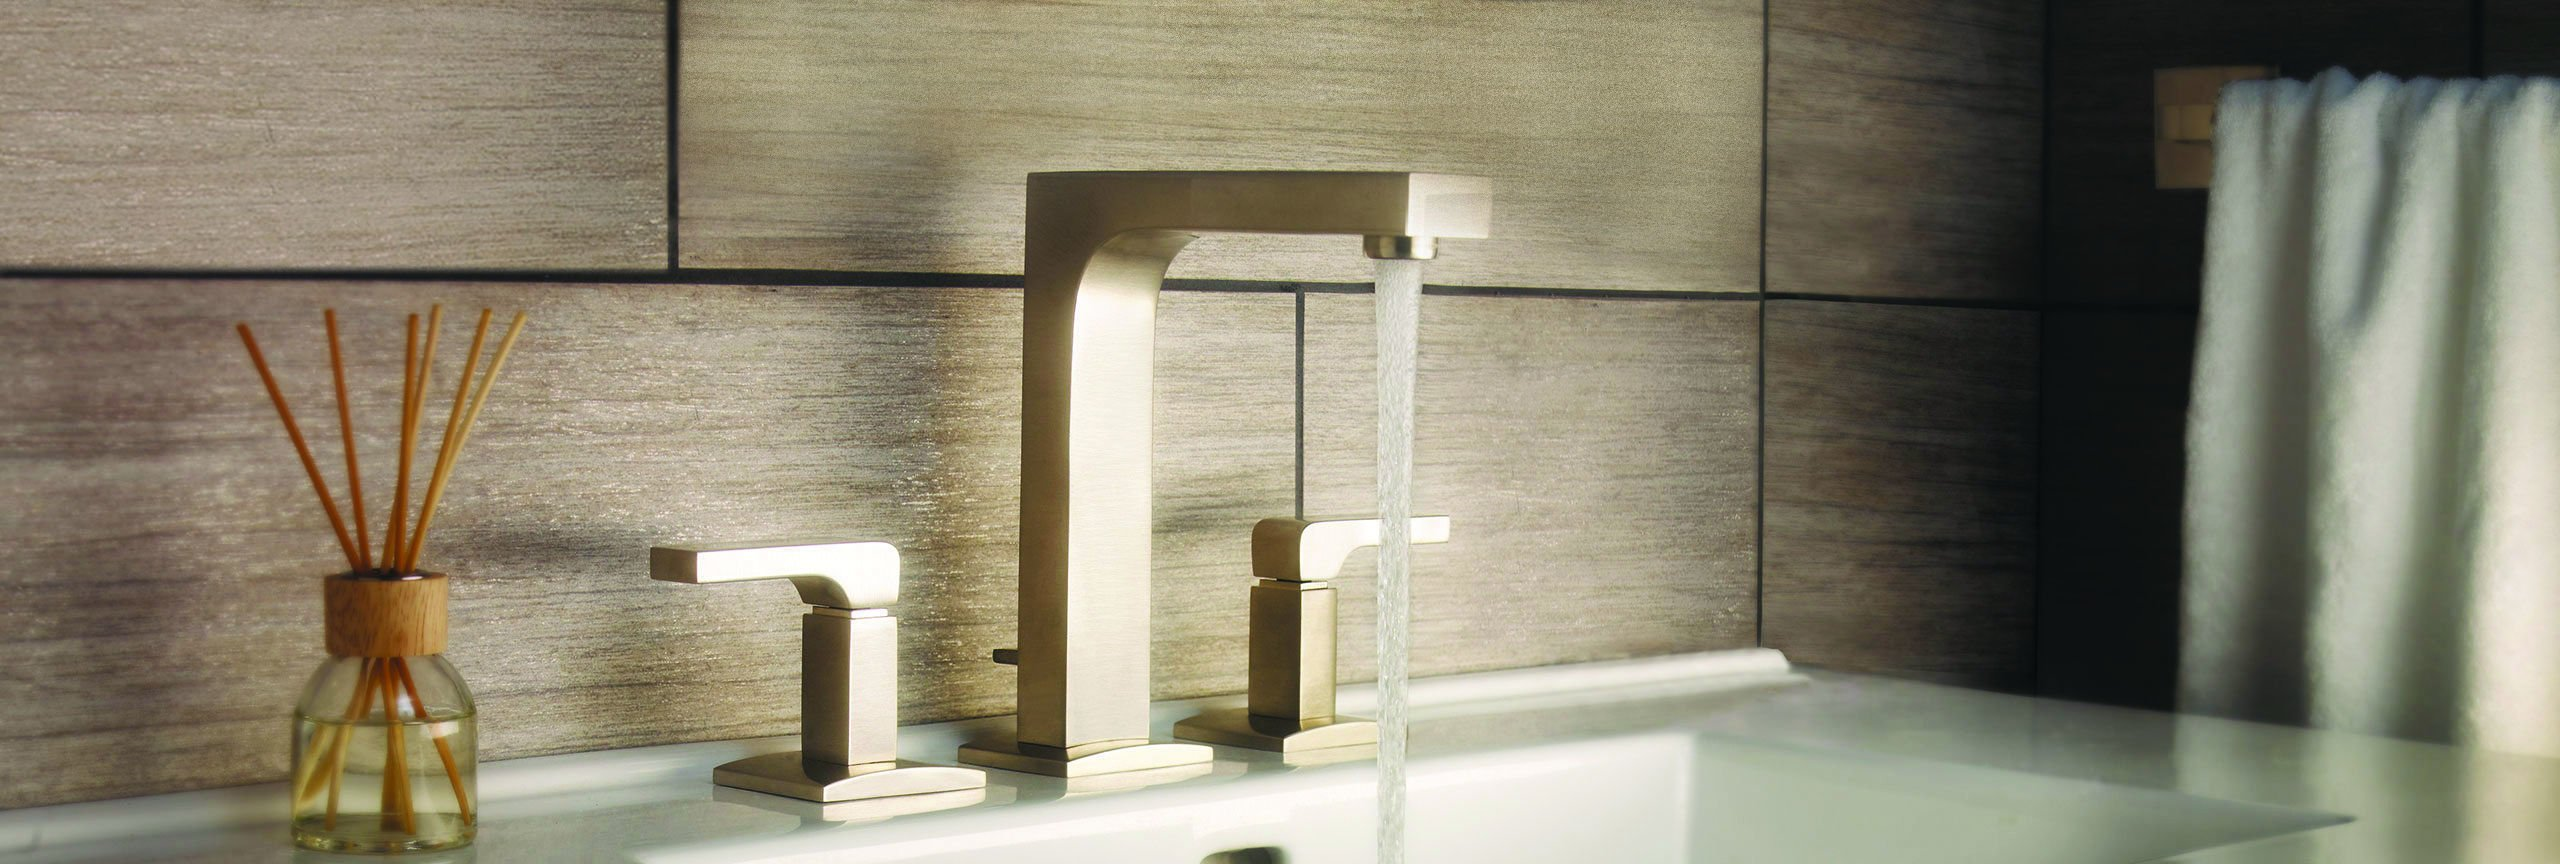 bathroom series Solimar widespread faucet in satin brass with running water